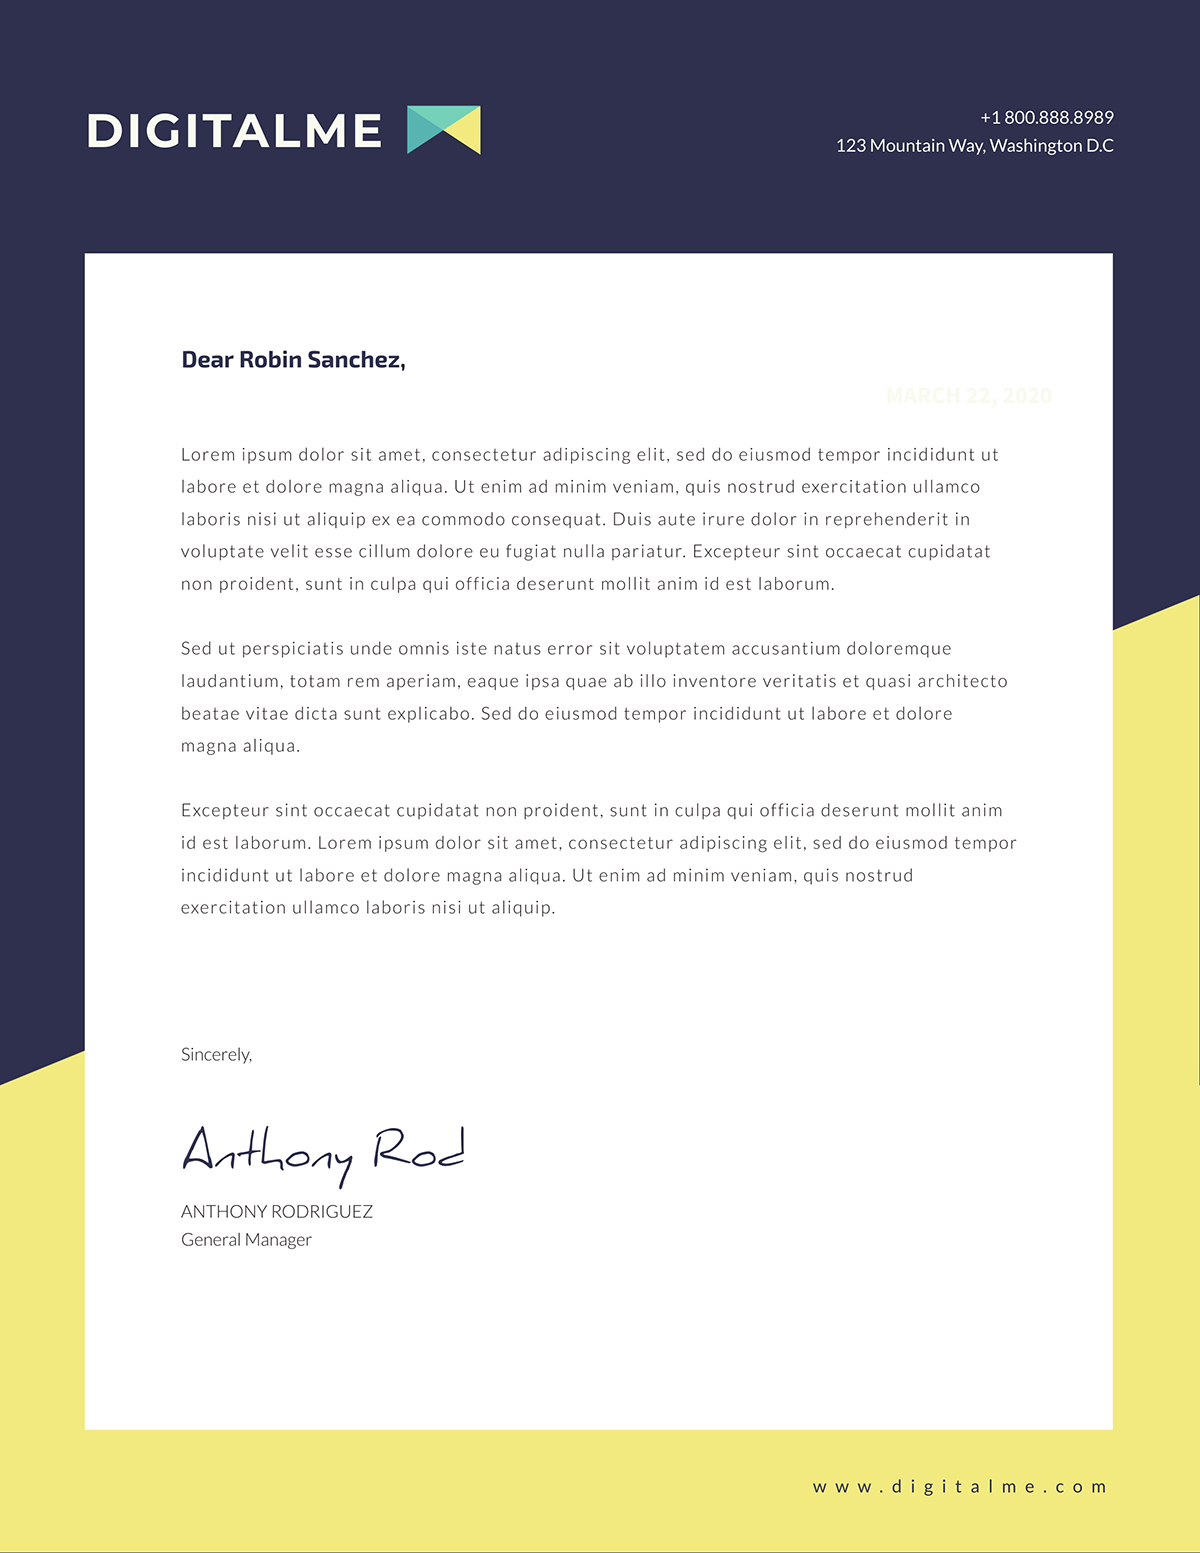 Blue and yellow business letter template available on Visme.